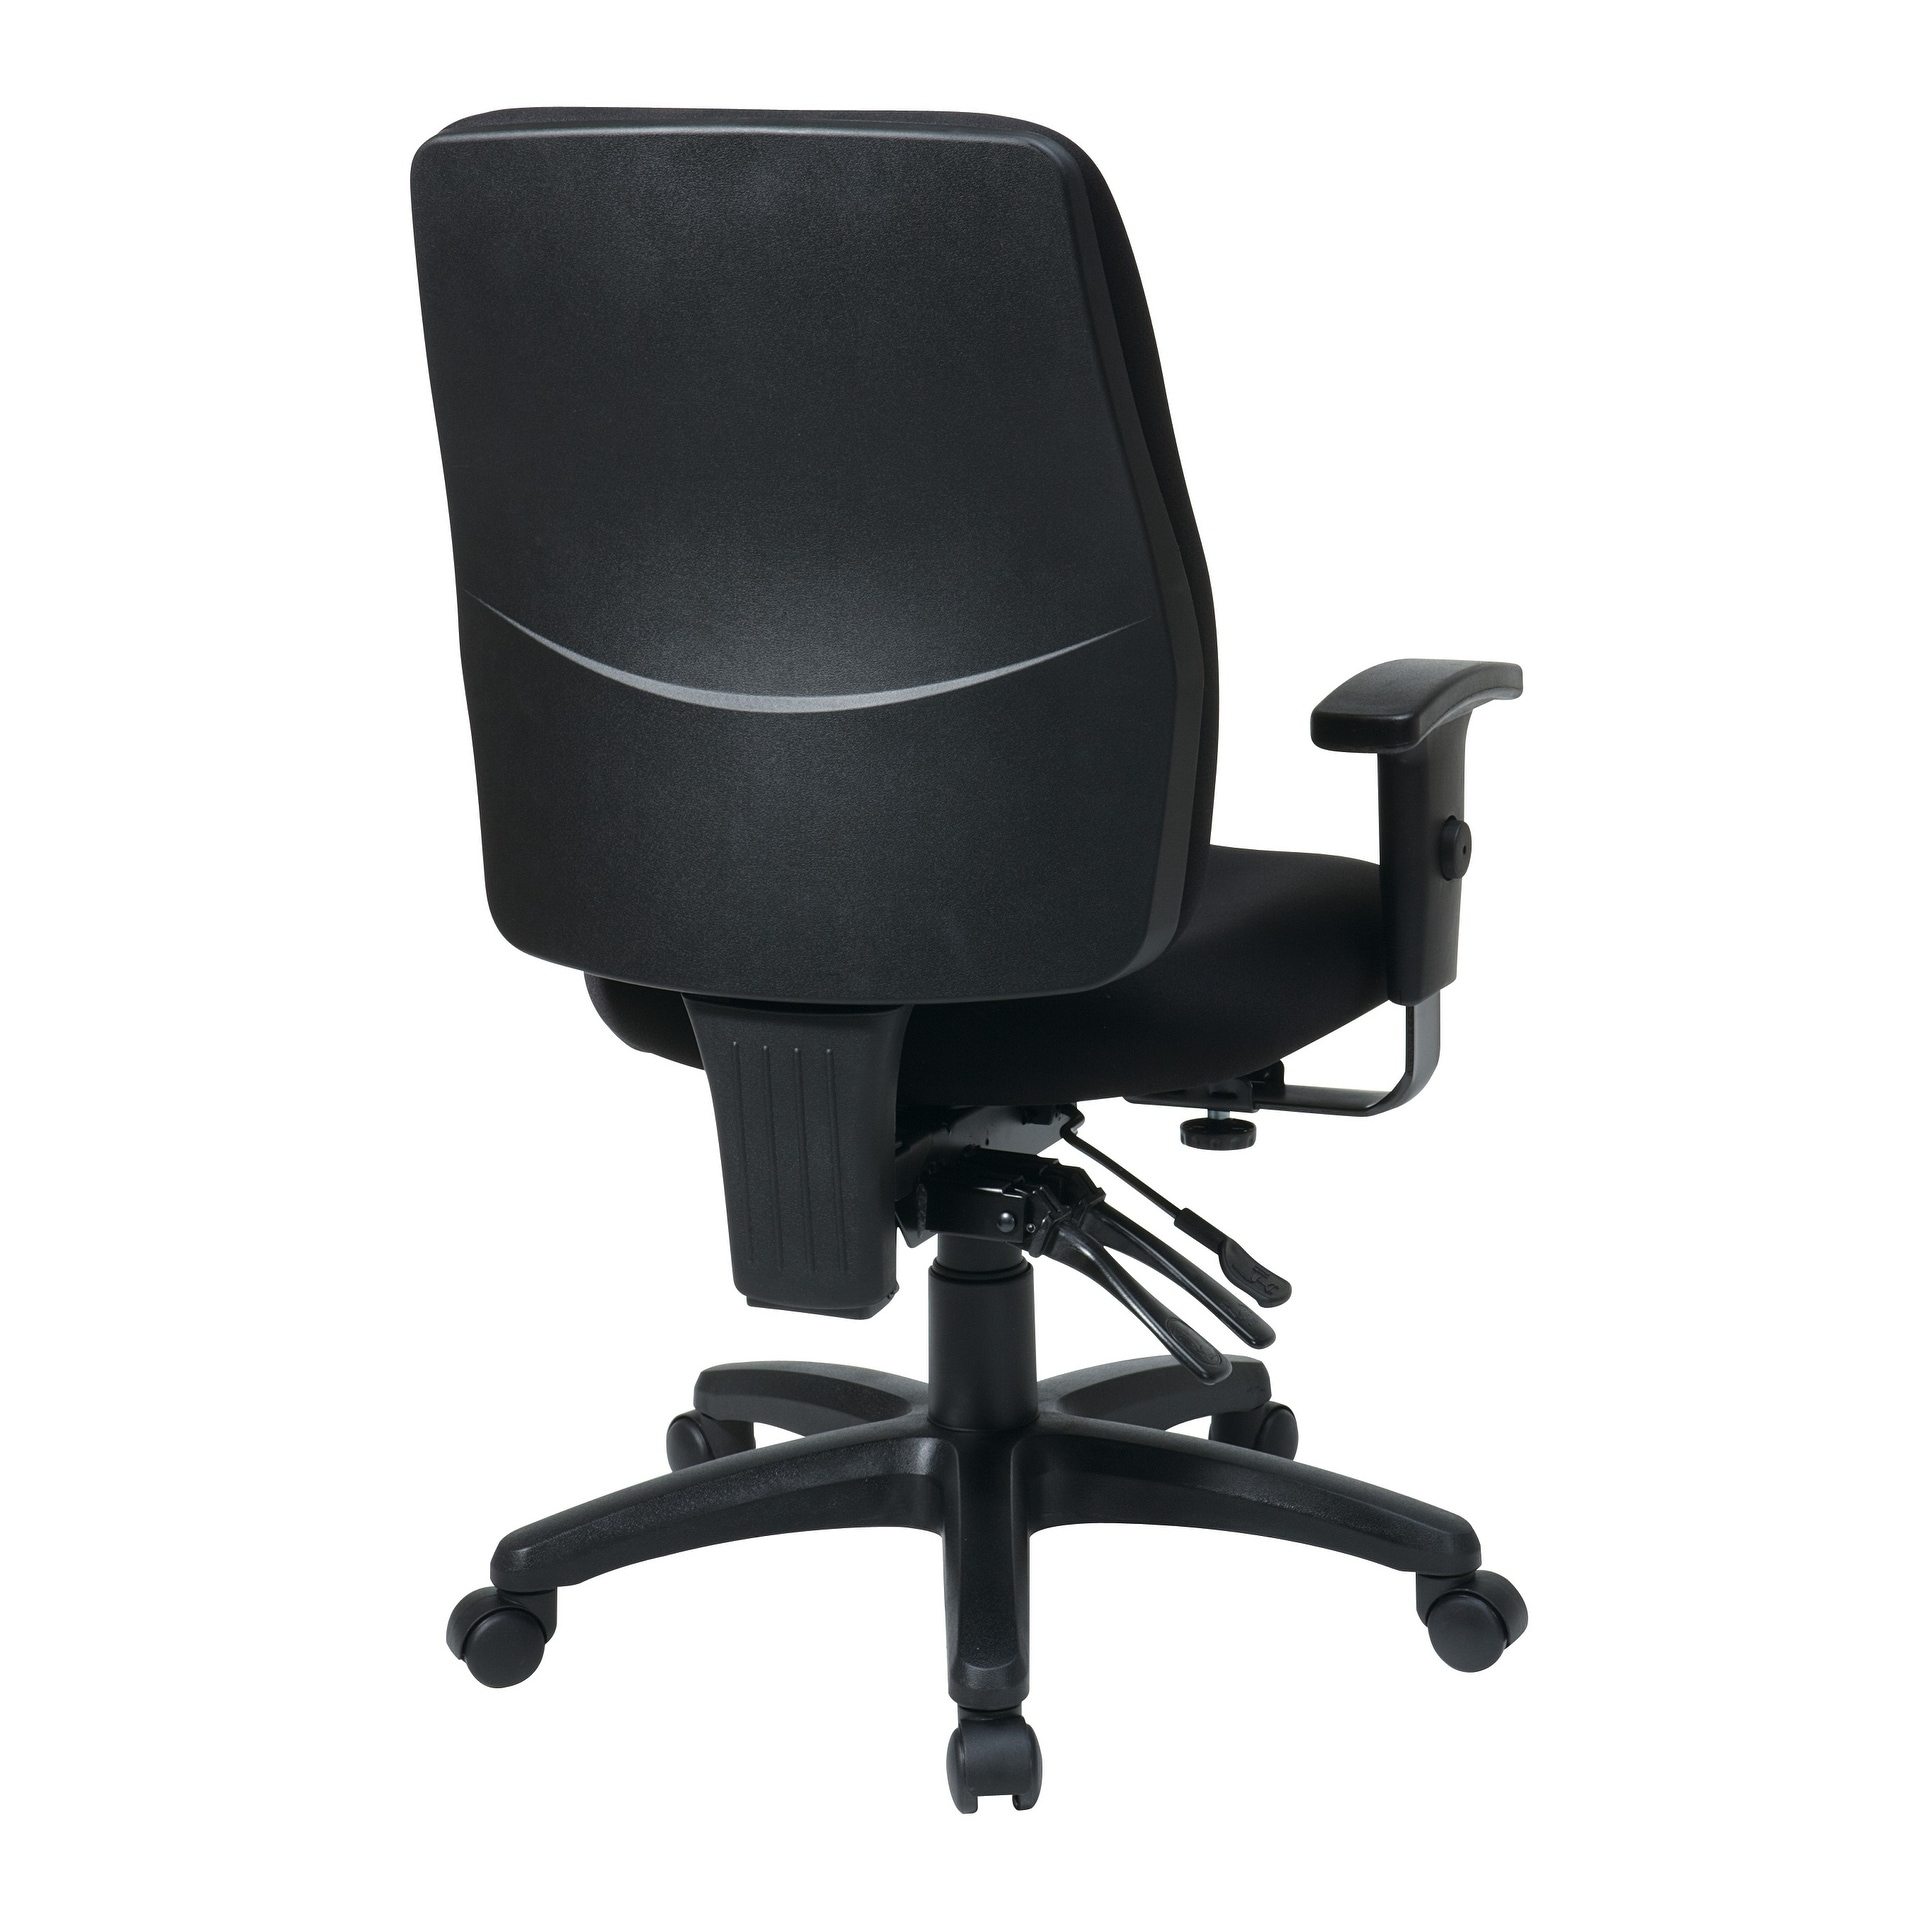 Ergonomic Chair Work Smart High Back Dual Function Ergonomic Chair